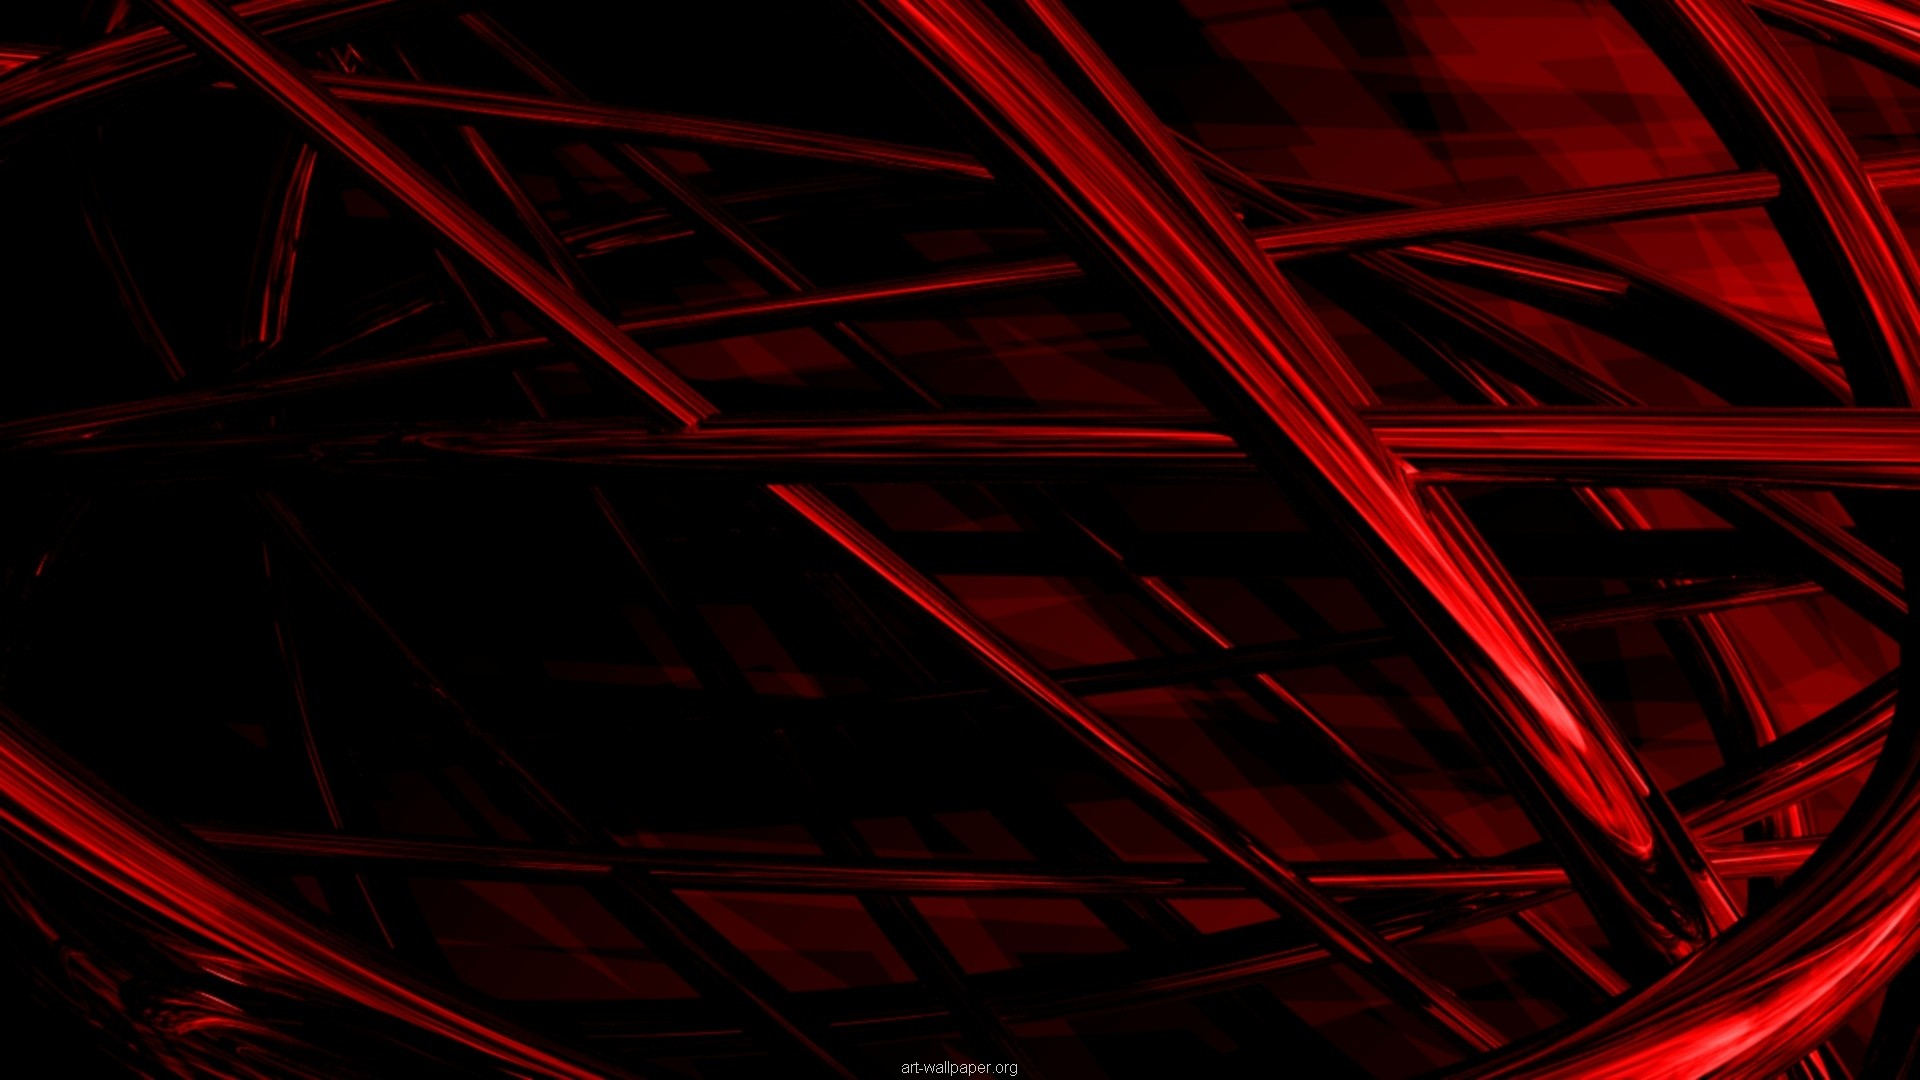 Wallpapers 4k Black Wallpaper Full Hd Wallpapers Desktop Black And Red Background Hd 1920x1080 Wallpaper Teahub Io